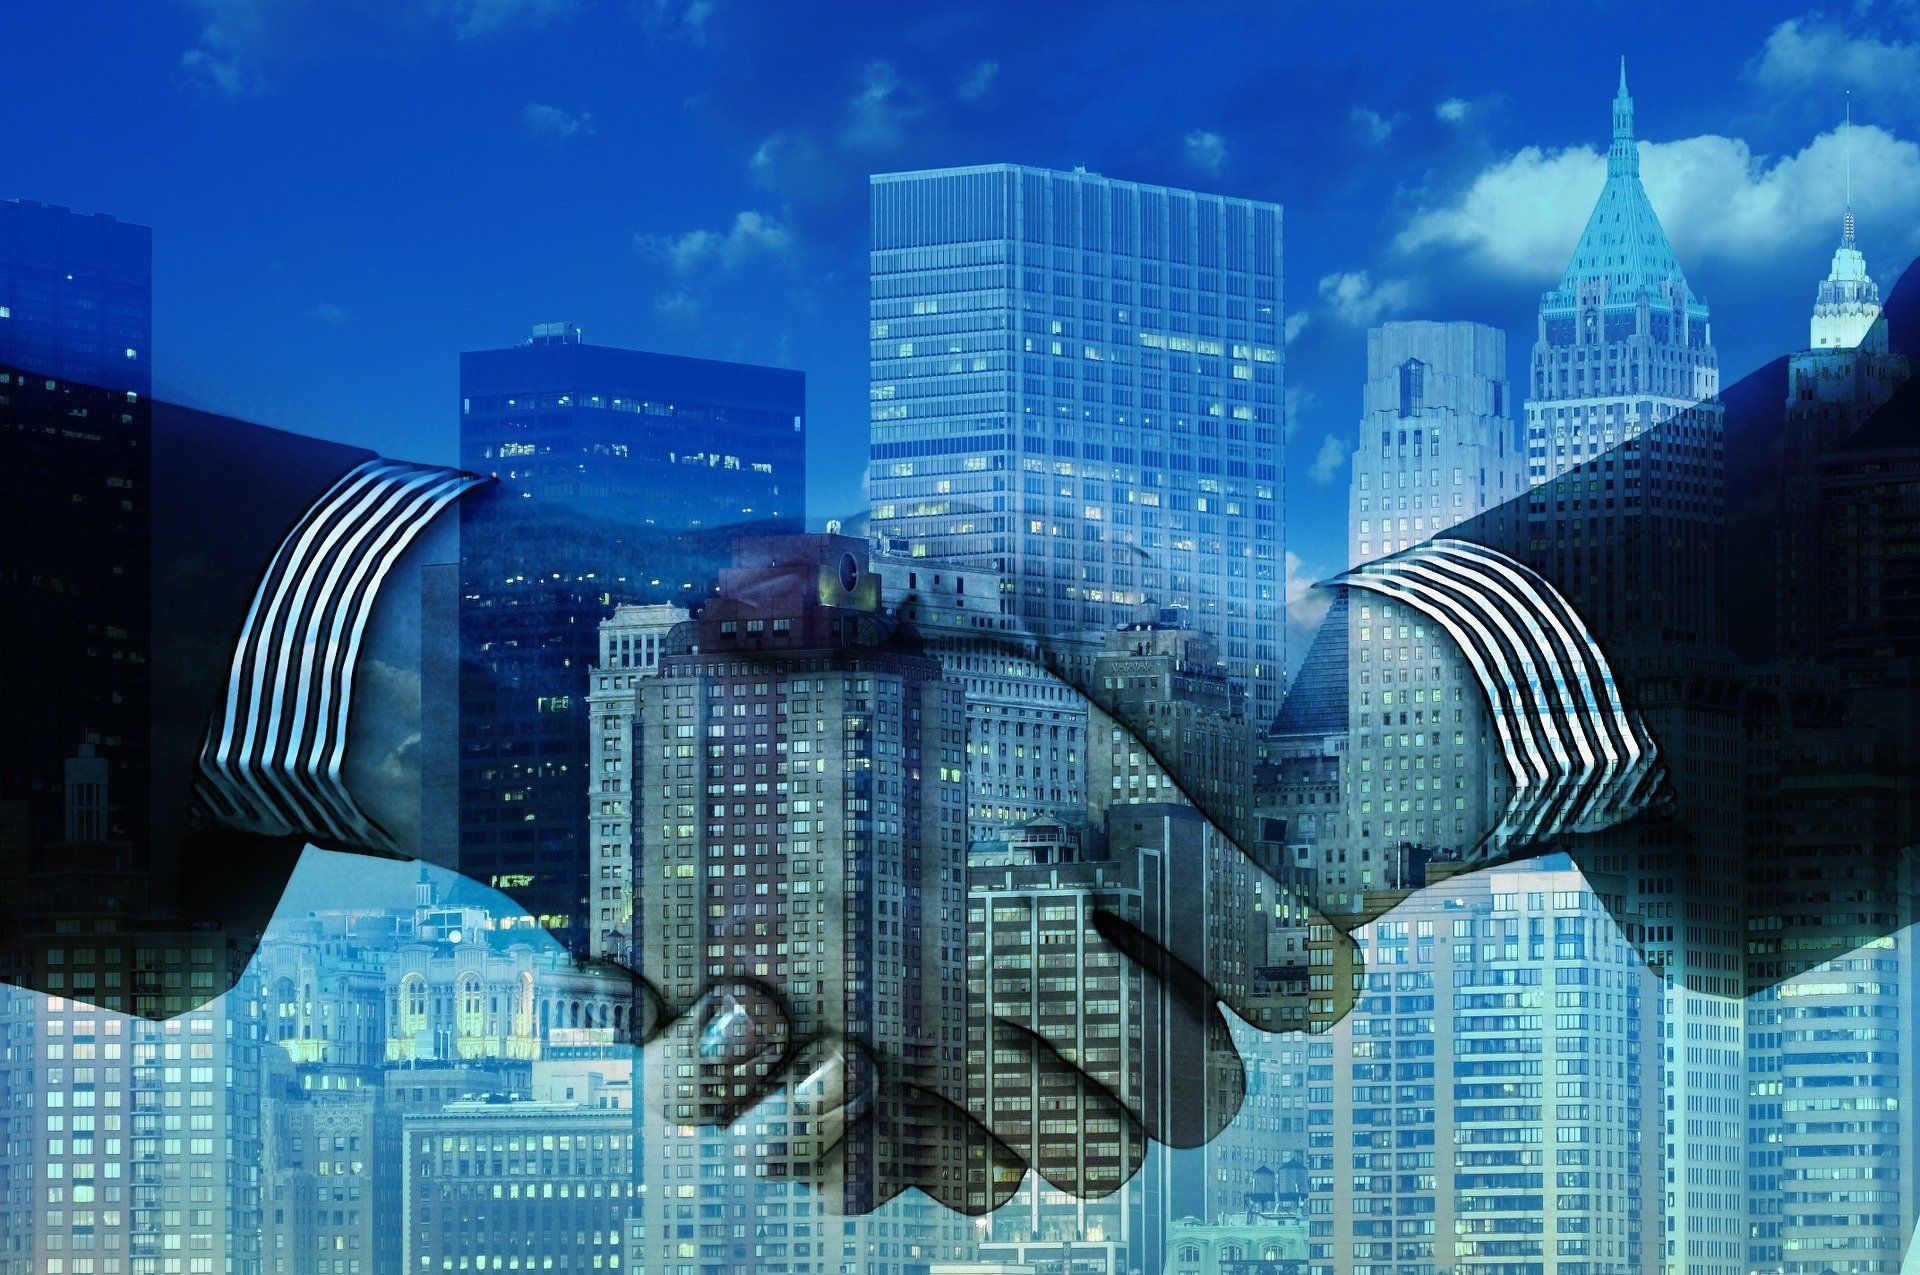 /tips-for-creating-a-long-lasting-partnership-agreement-with-your-startup-cofounder-9pv323x feature image